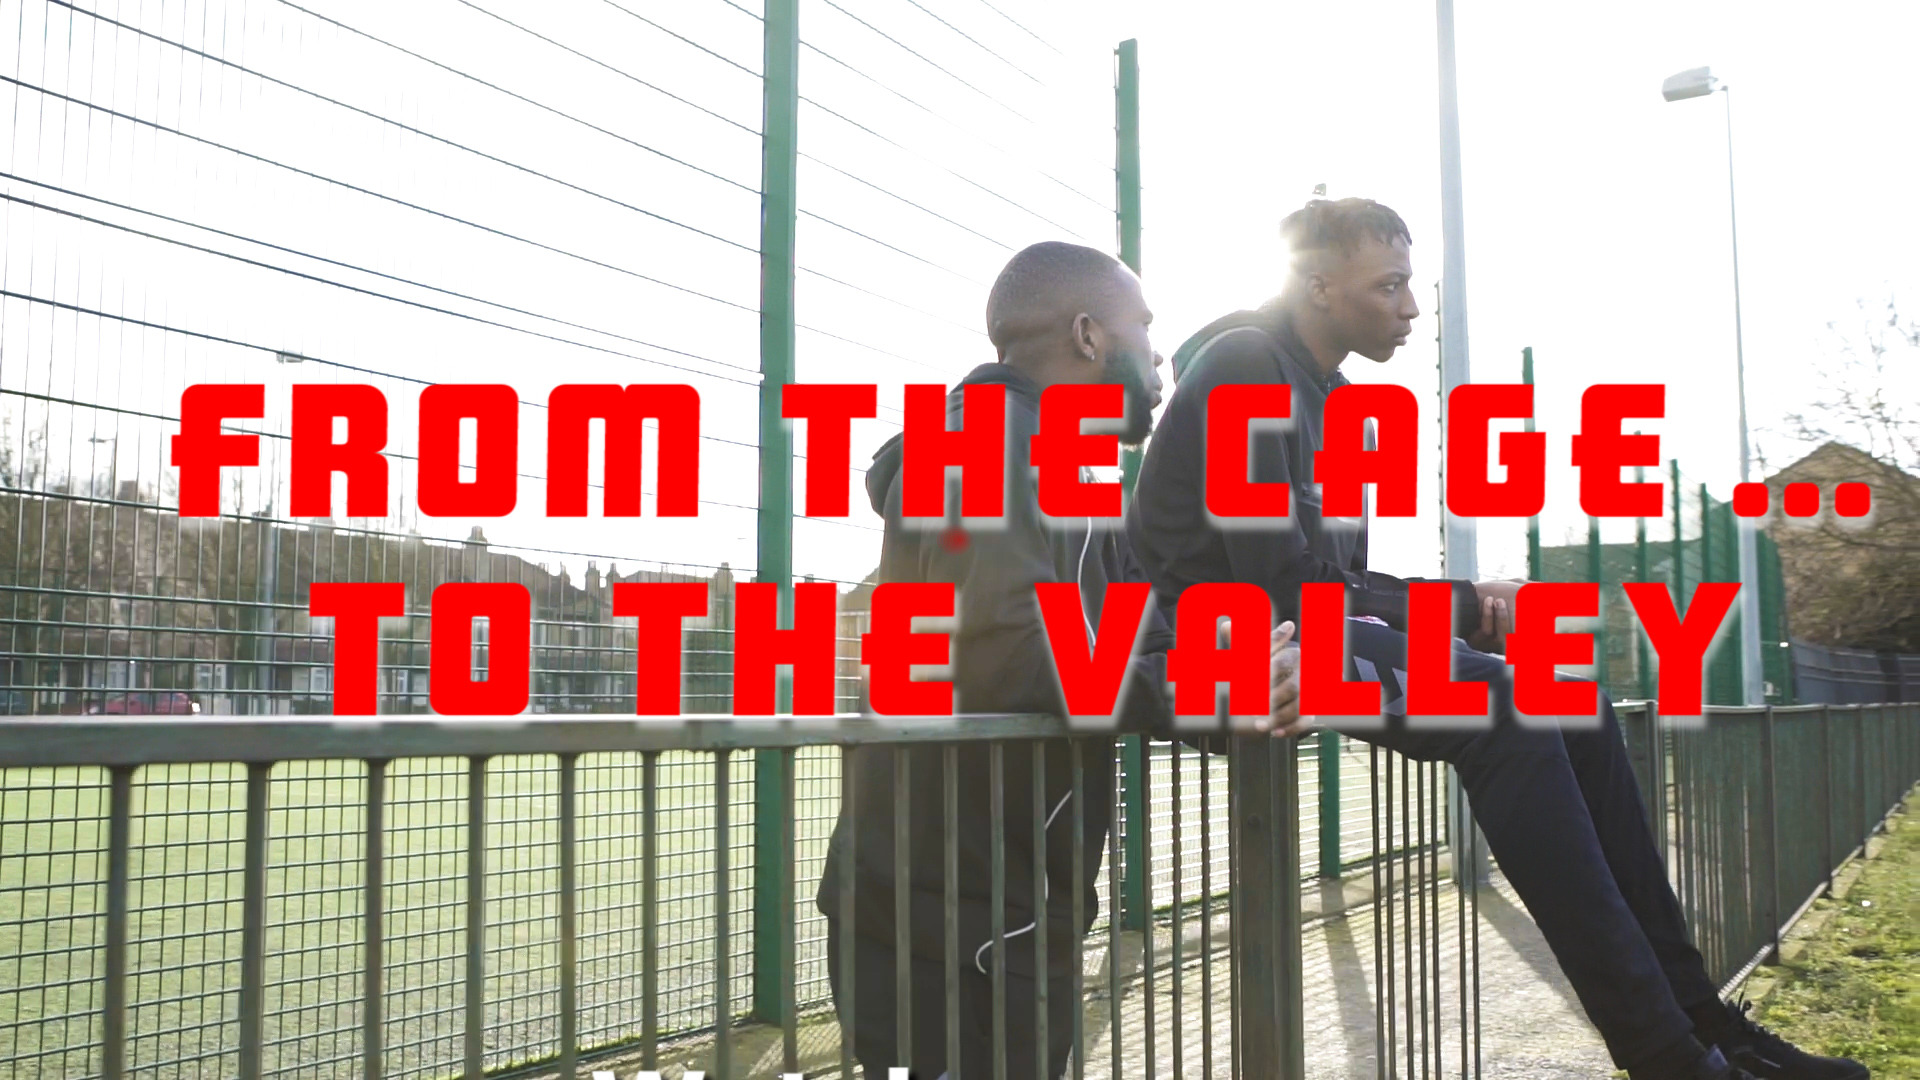 From The Cage... to The Valley